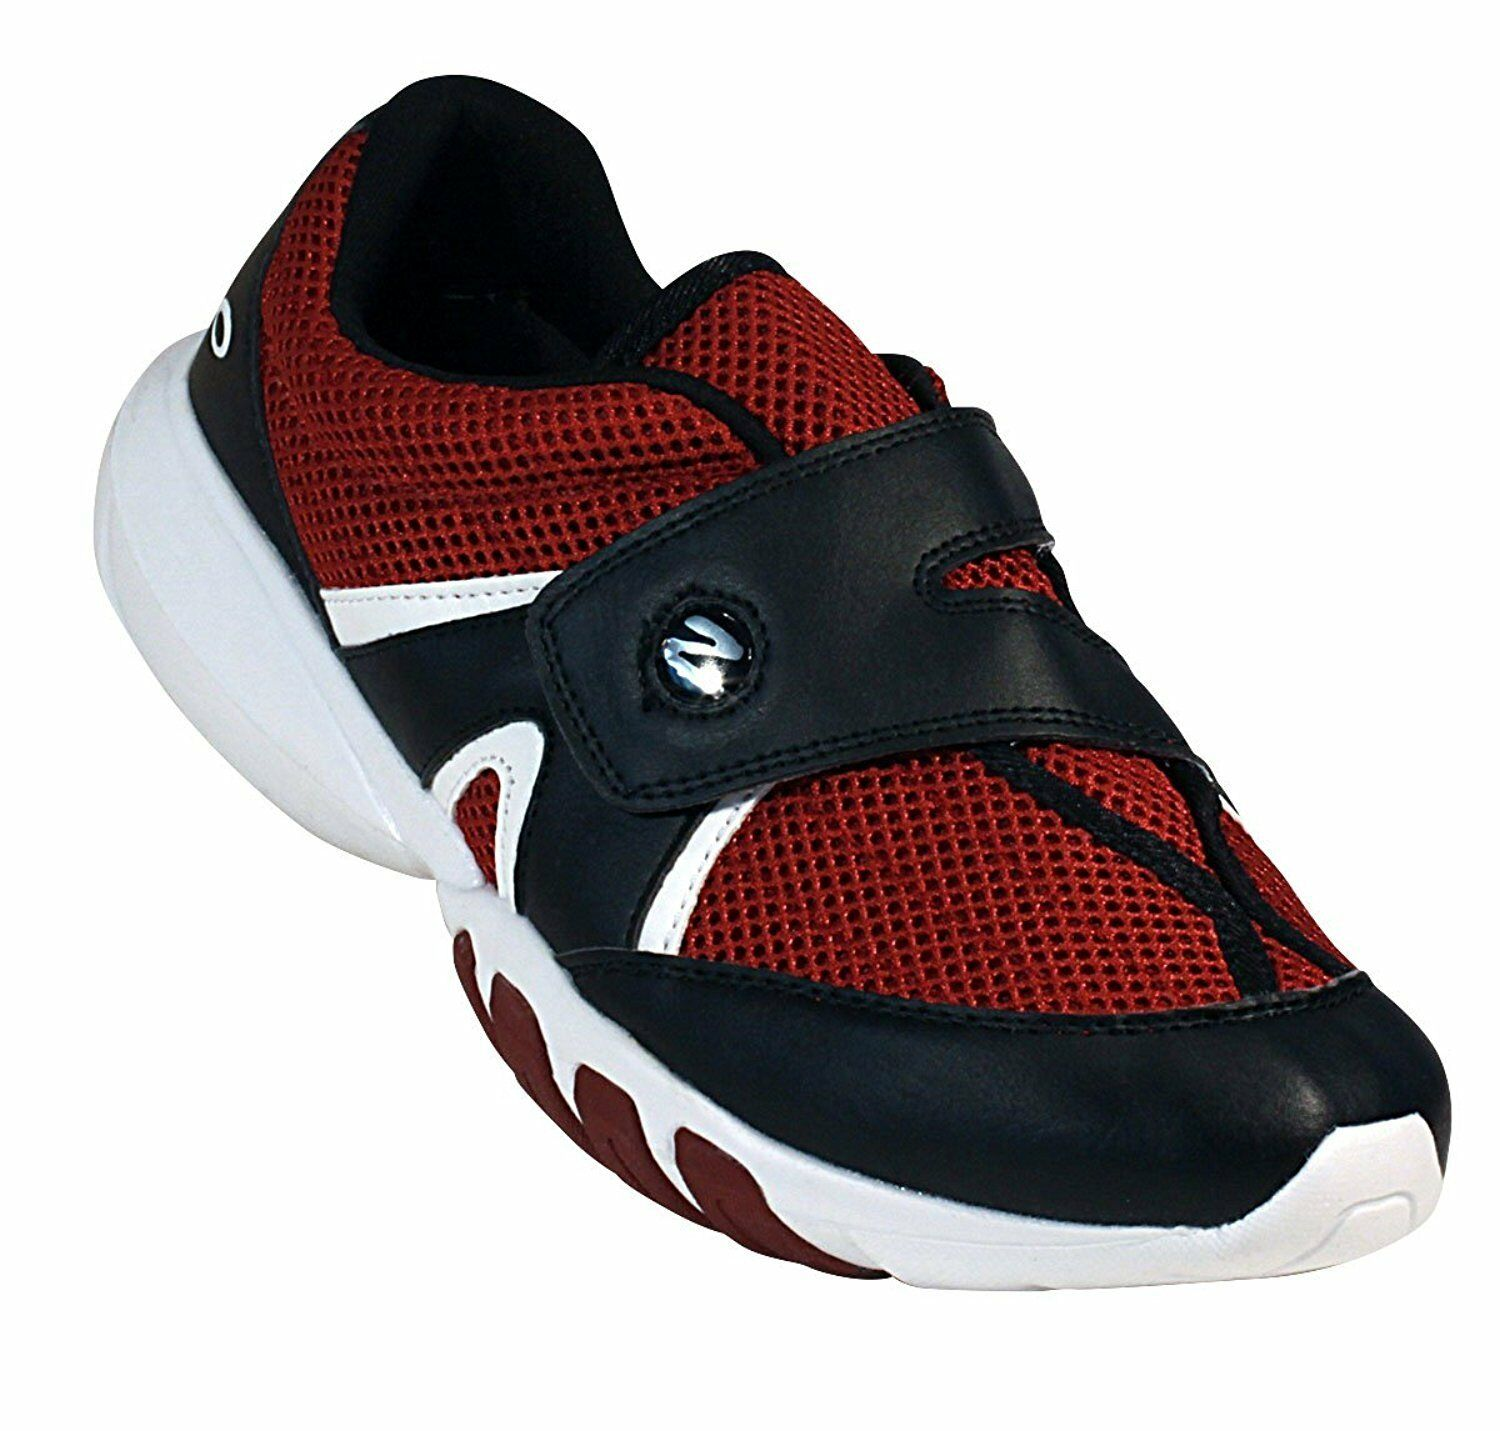 Zeko Lightweight Fishing, Boating, Outdoor and Athletic Drainable Crimson shoes